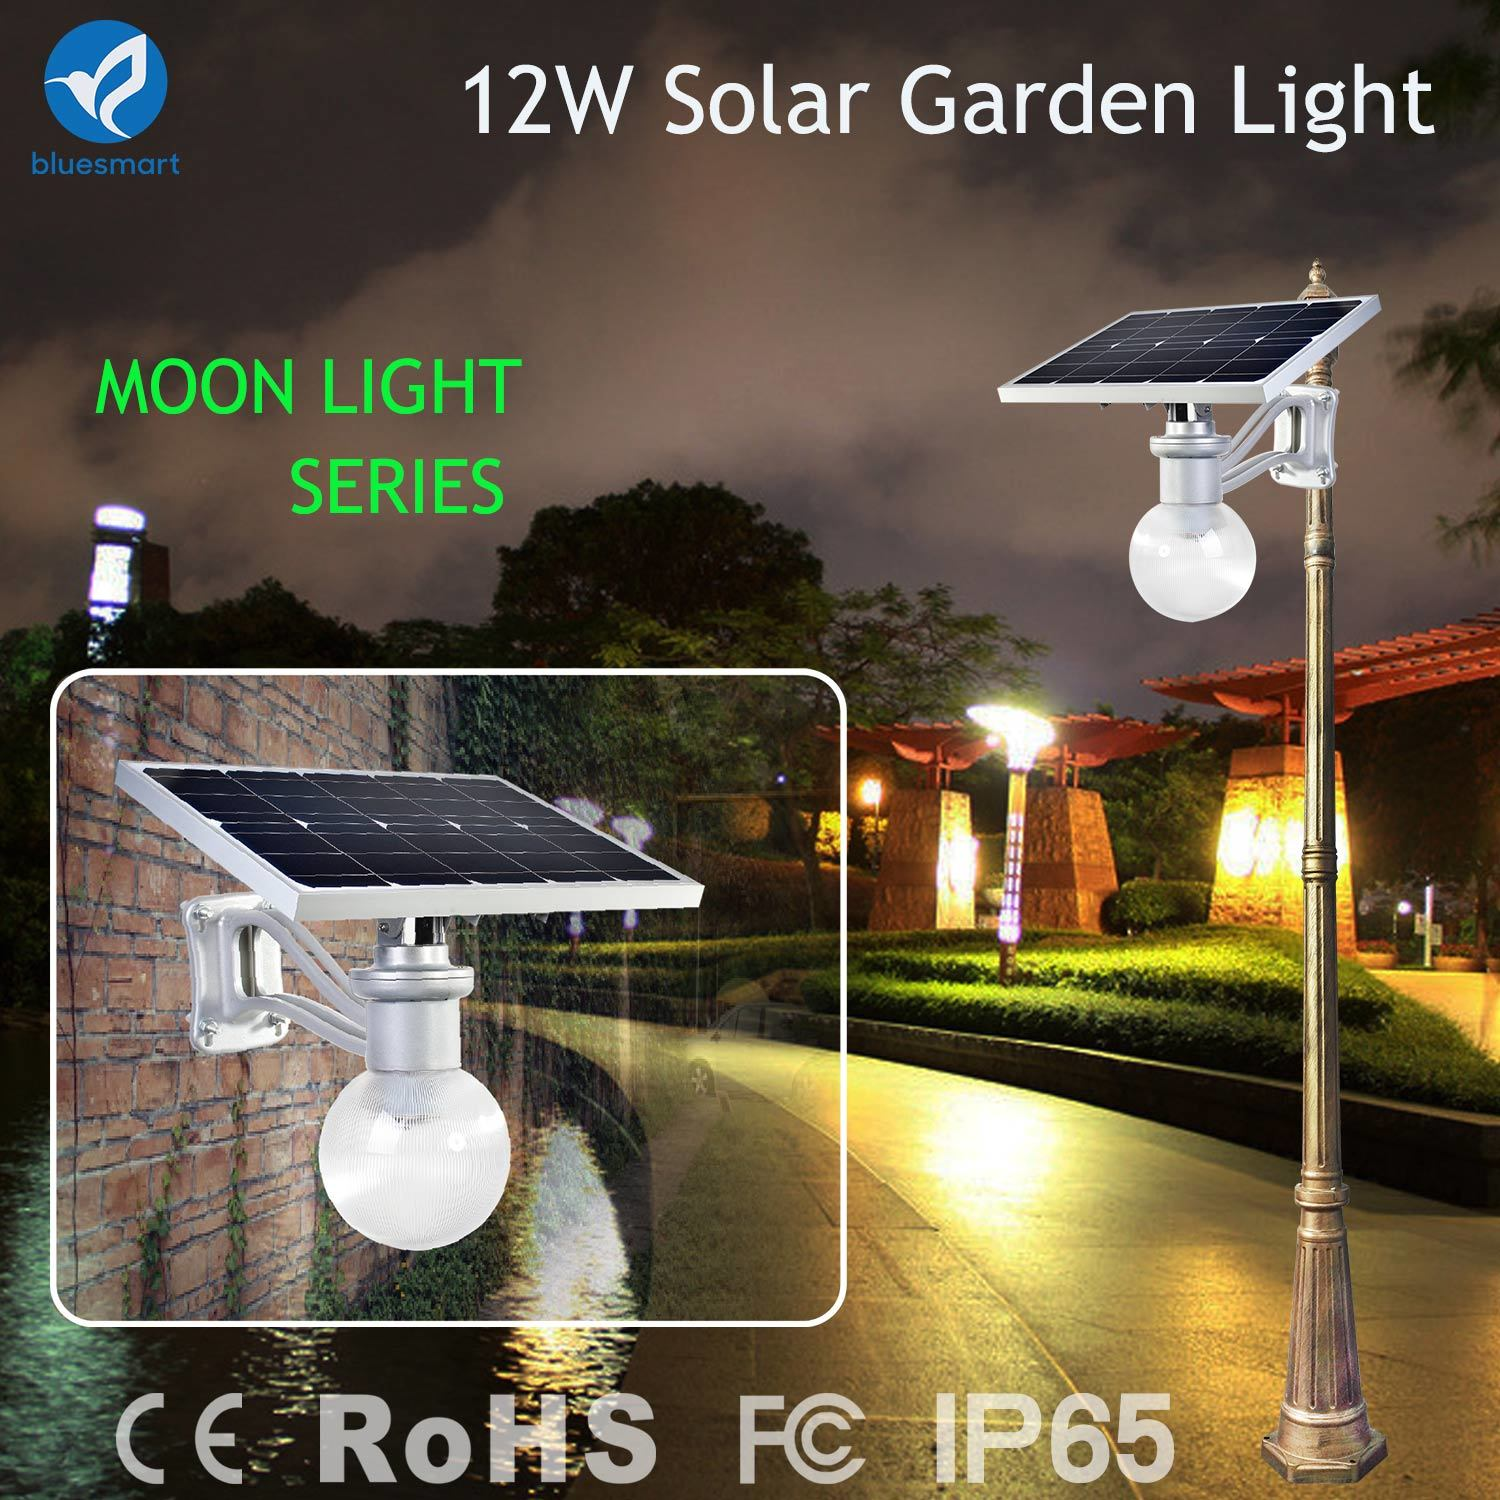 Bluesmart Outdoor 6-12W Motion Sensor LED Solar Street Garden Light